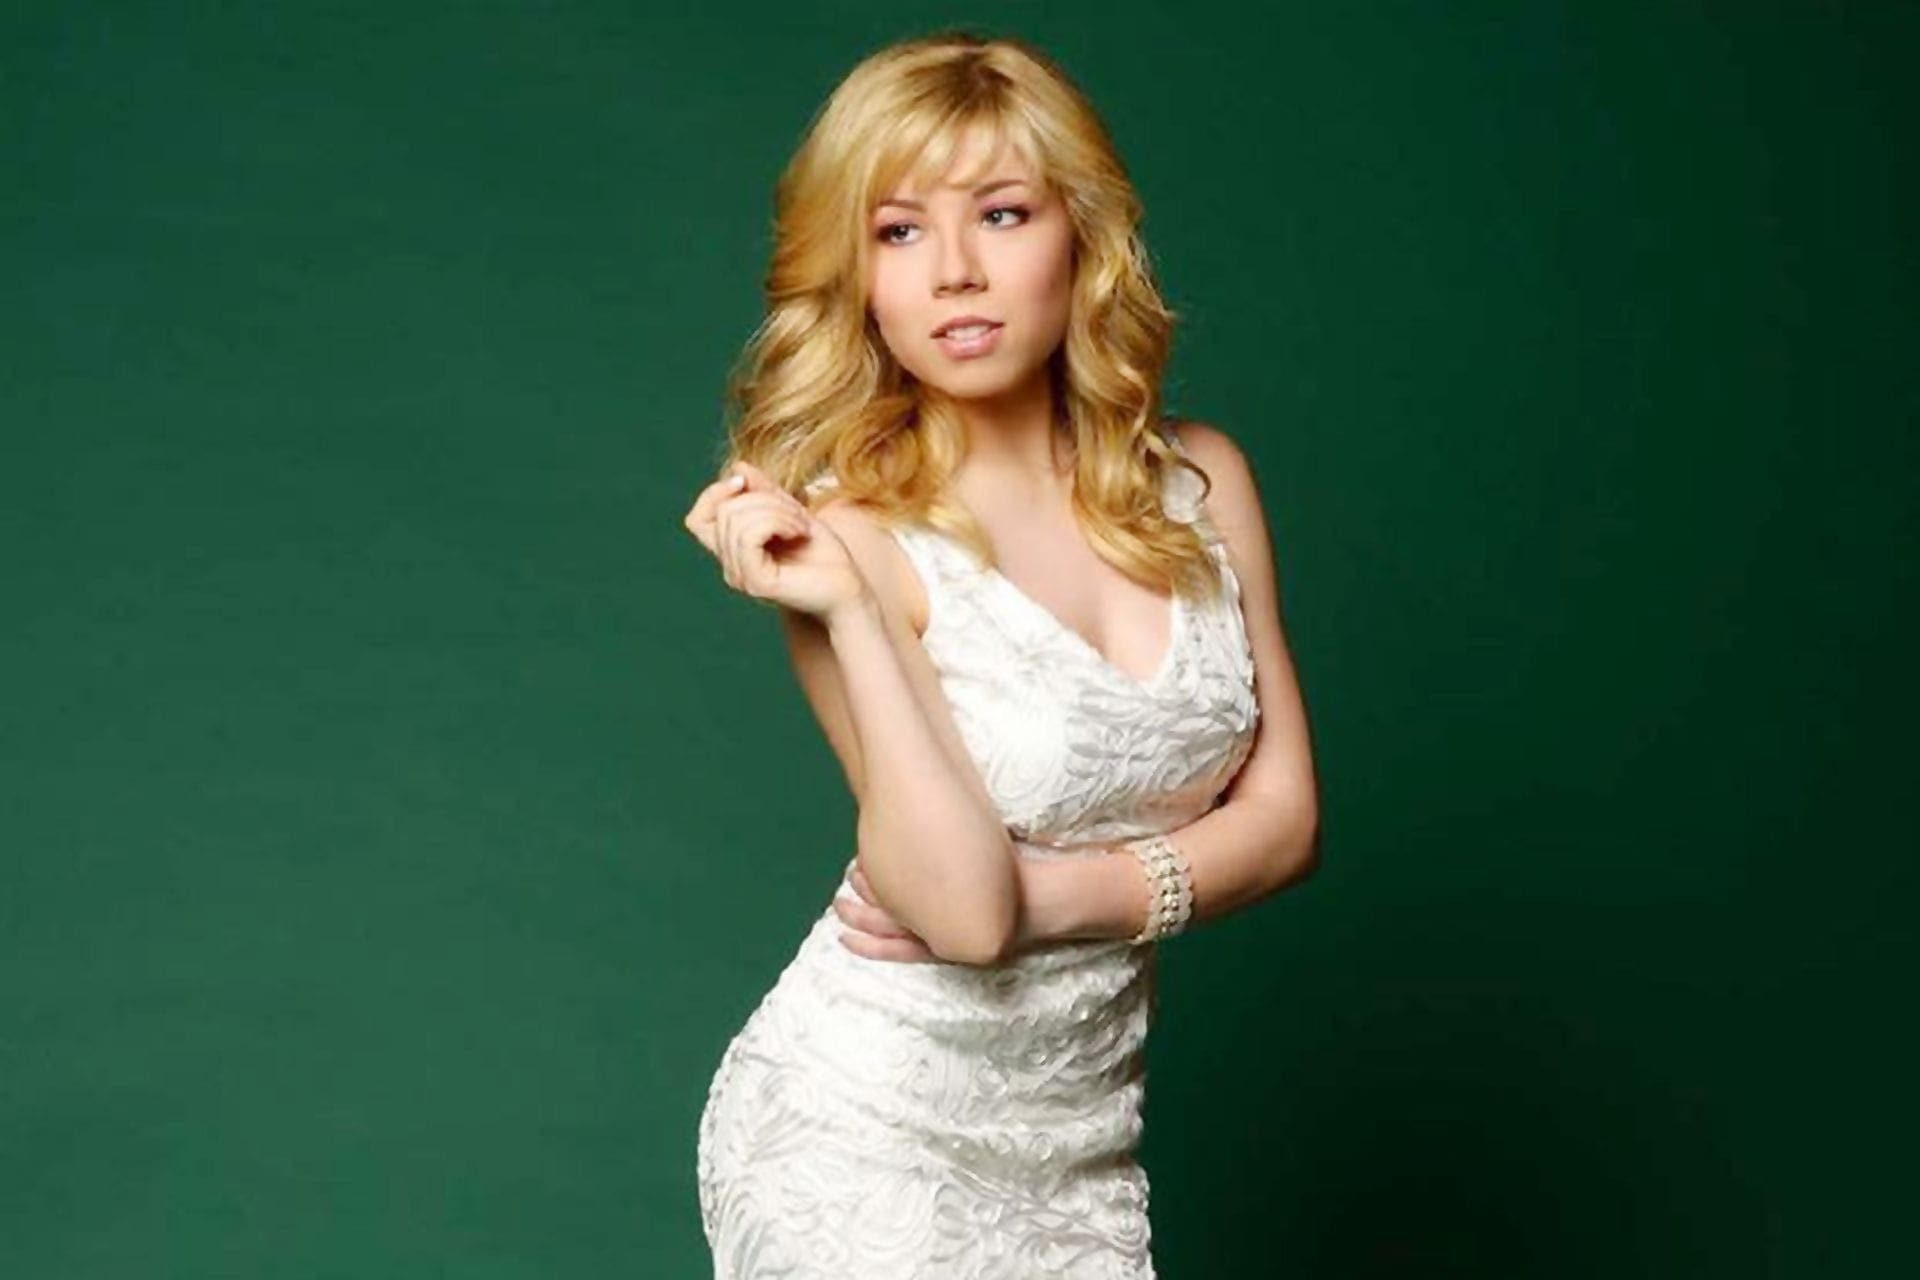 jennette mccurdy sexy pics